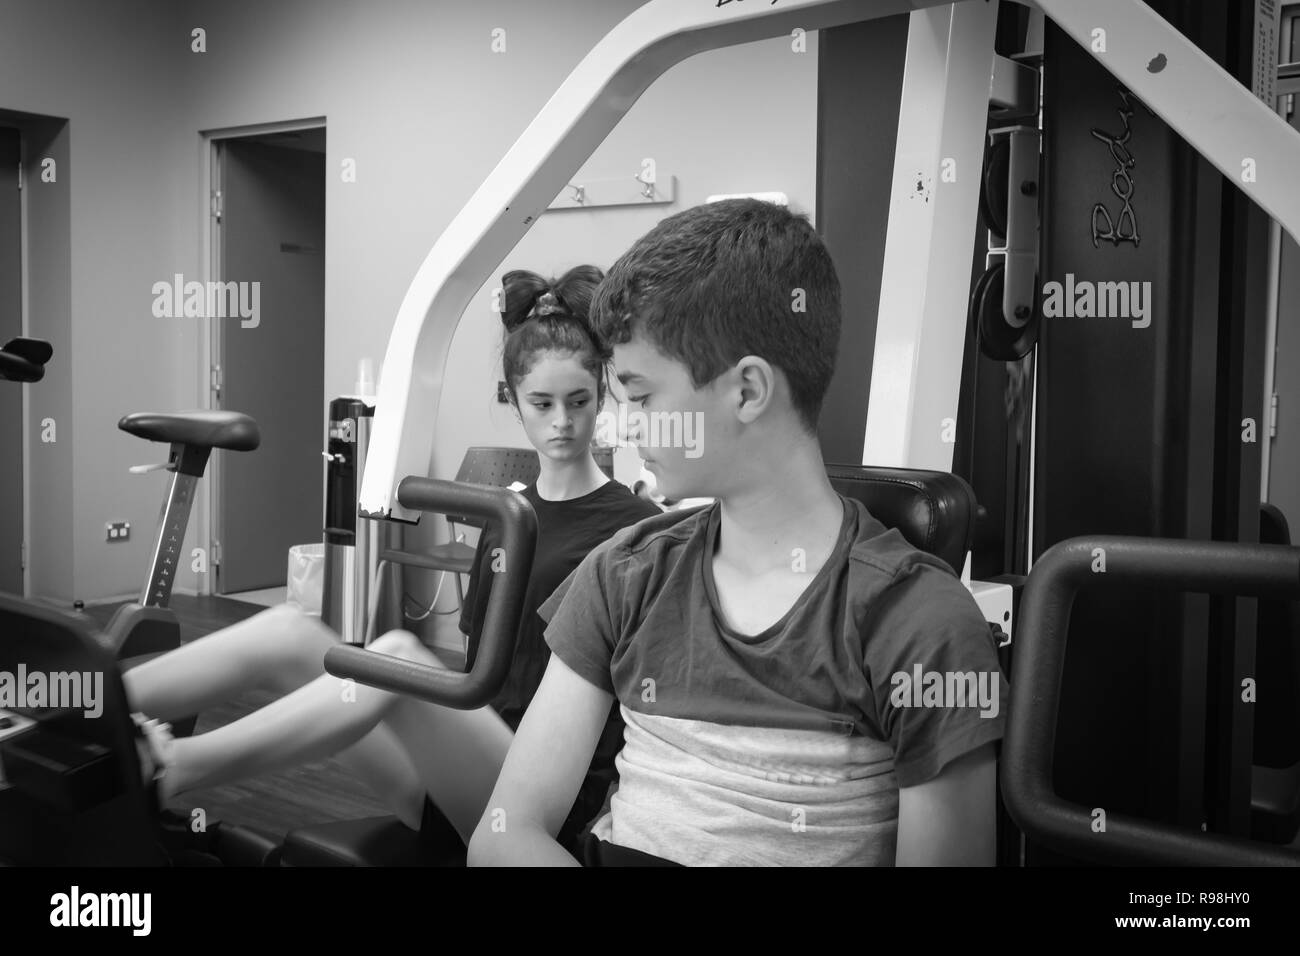 TAURANGA NEW ZEALAND - DECEMBER 15,2018; Young person engaged in physical activity at a gym - Stock Image